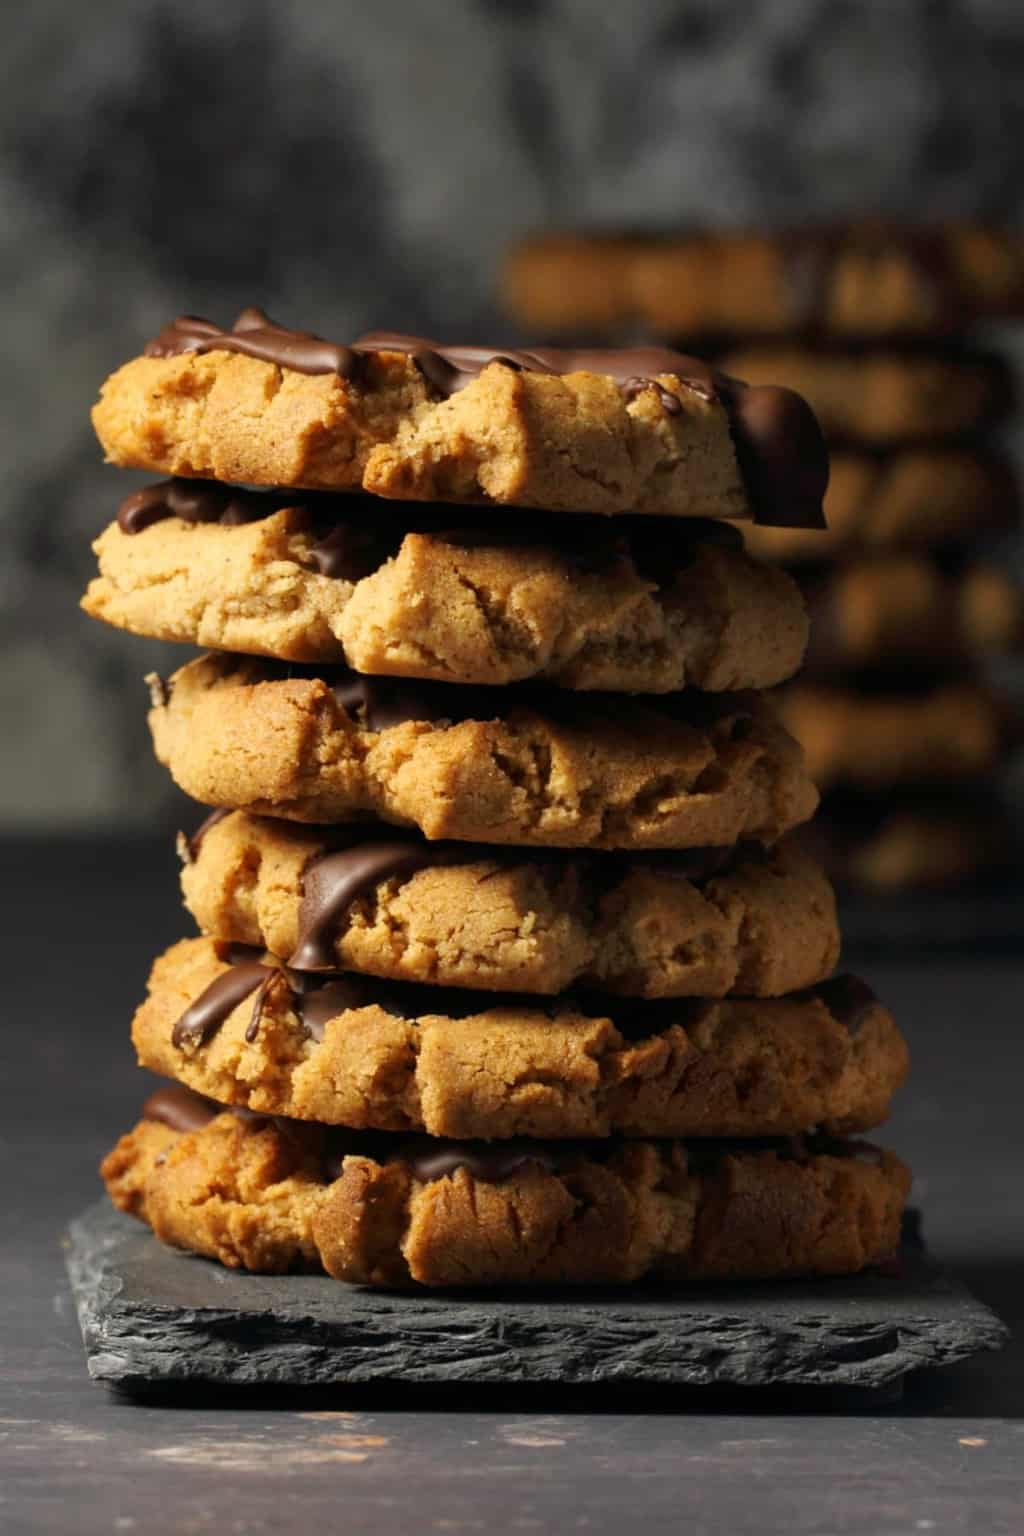 Vegan almond butter cookies topped with drizzled chocolate in a stack against a dark background.